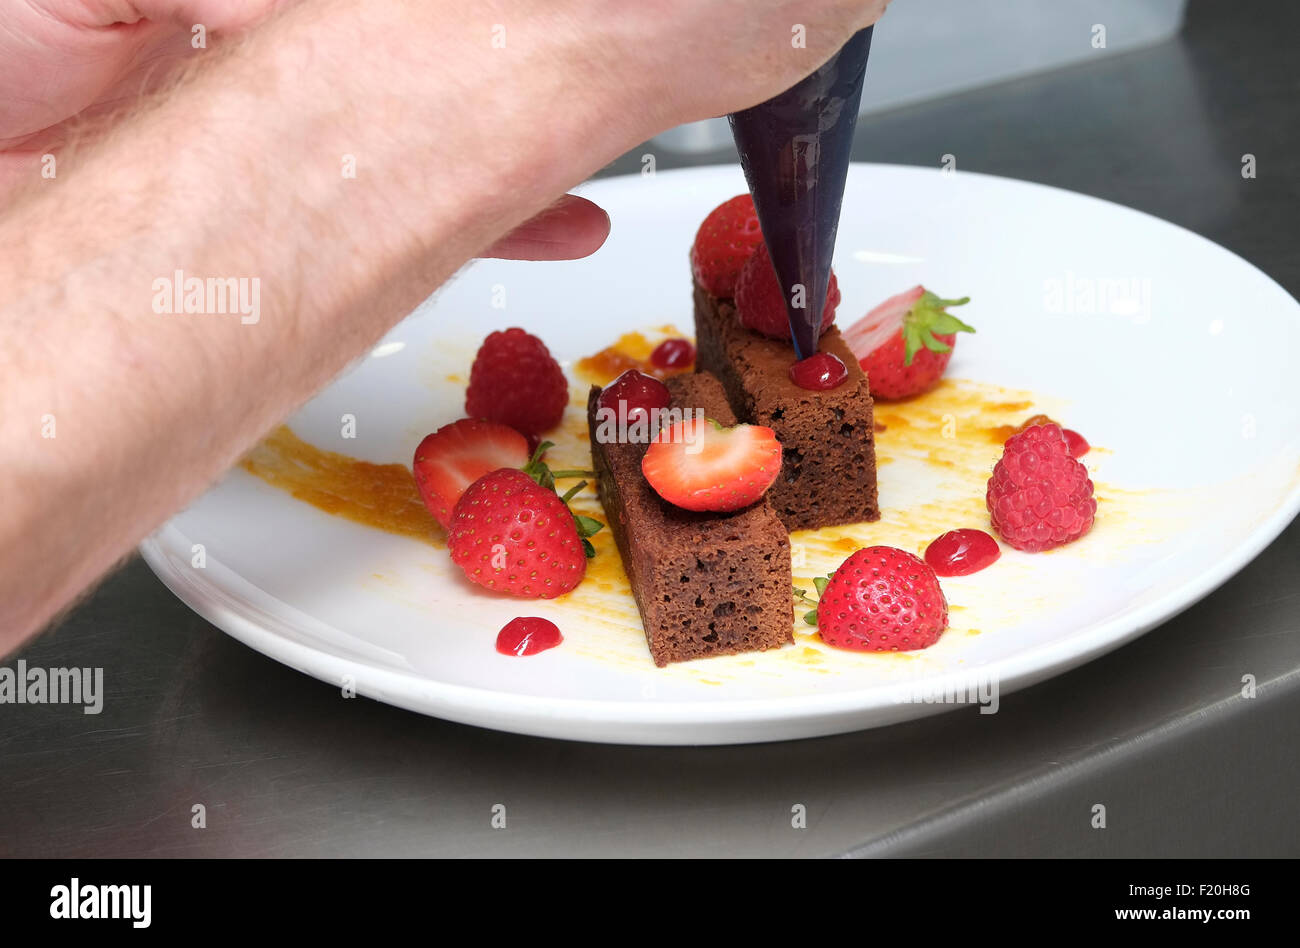 chef putting finishing touches to sweet dessert - Stock Image